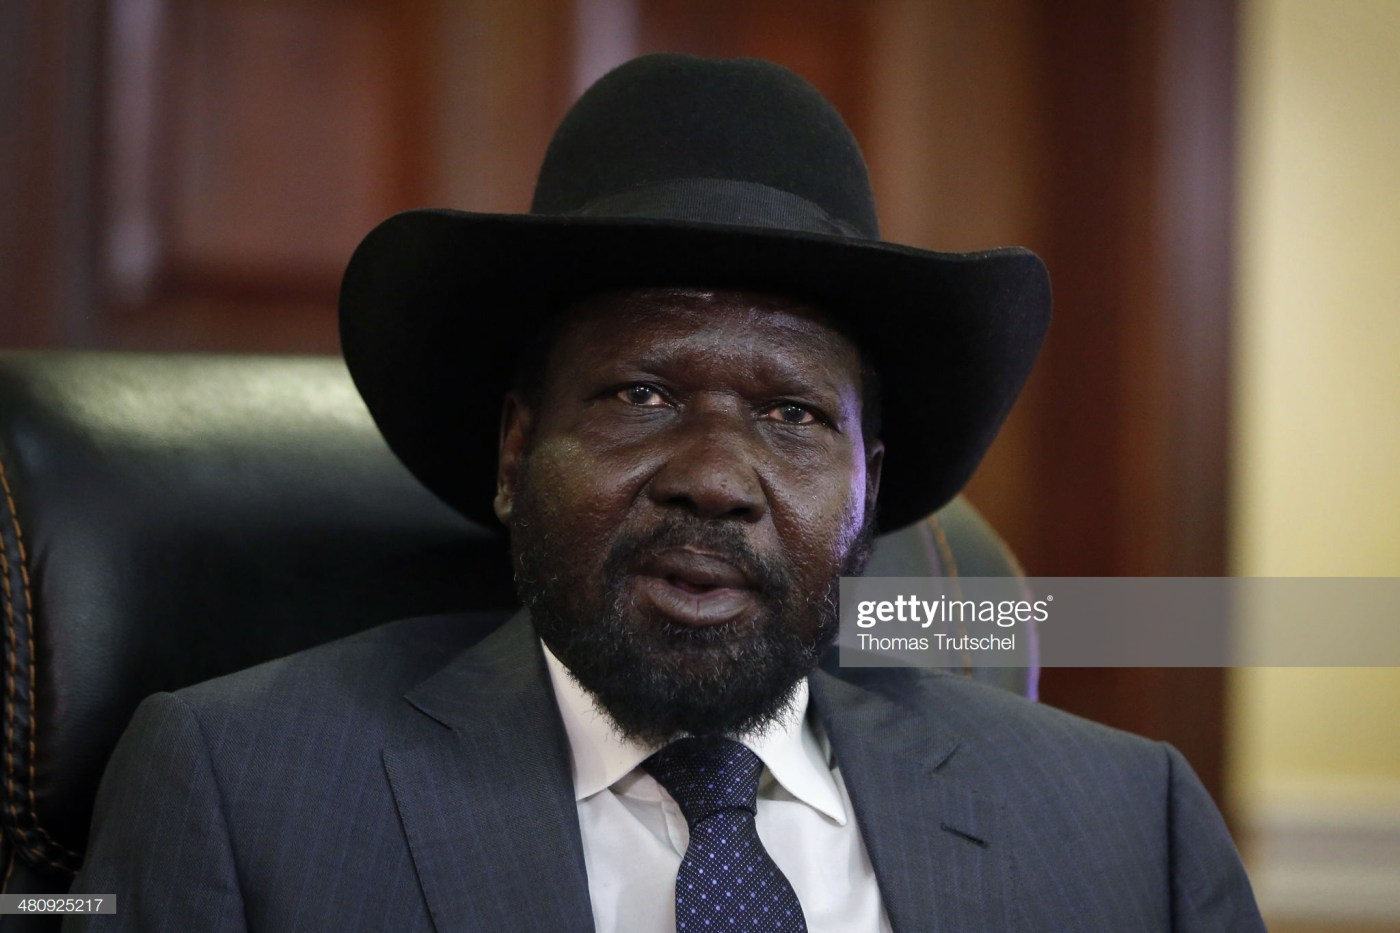 JUBA, SOUTH SUDAN - MARCH 27: South Sudan President Salva Kiir is pictured during a meeting with German Development Minister Gerd Mueller (not pictured) on March 27, 2014 in Juba, South Sudan. Mueller is on a two day trip to Southsudan and Mali. (Photo by Thomas Trutschel/Photothek via Getty Images)